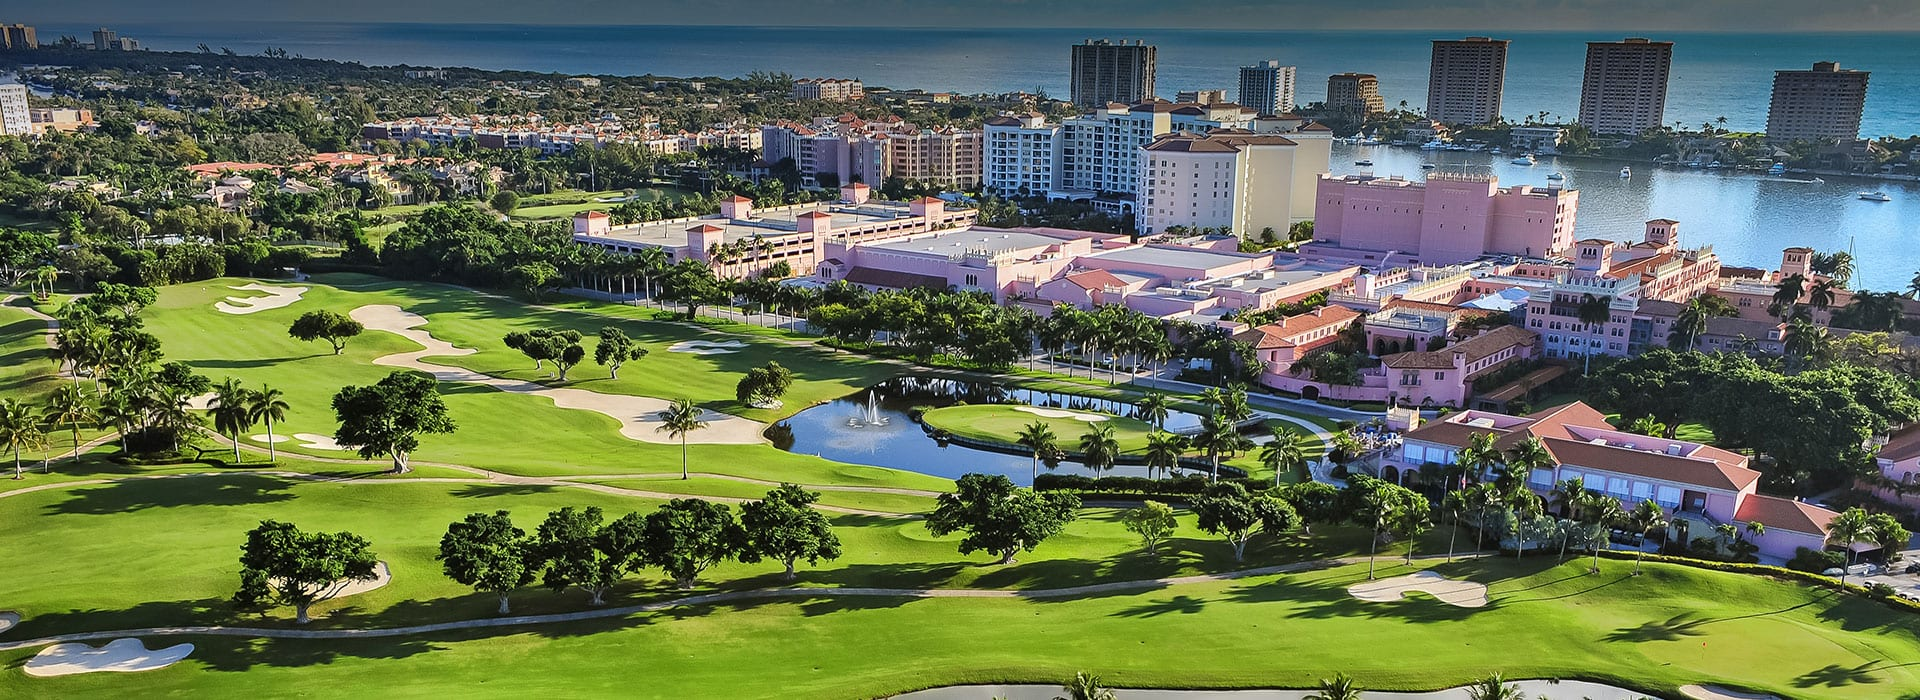 Aerial view of Boca West Country Club